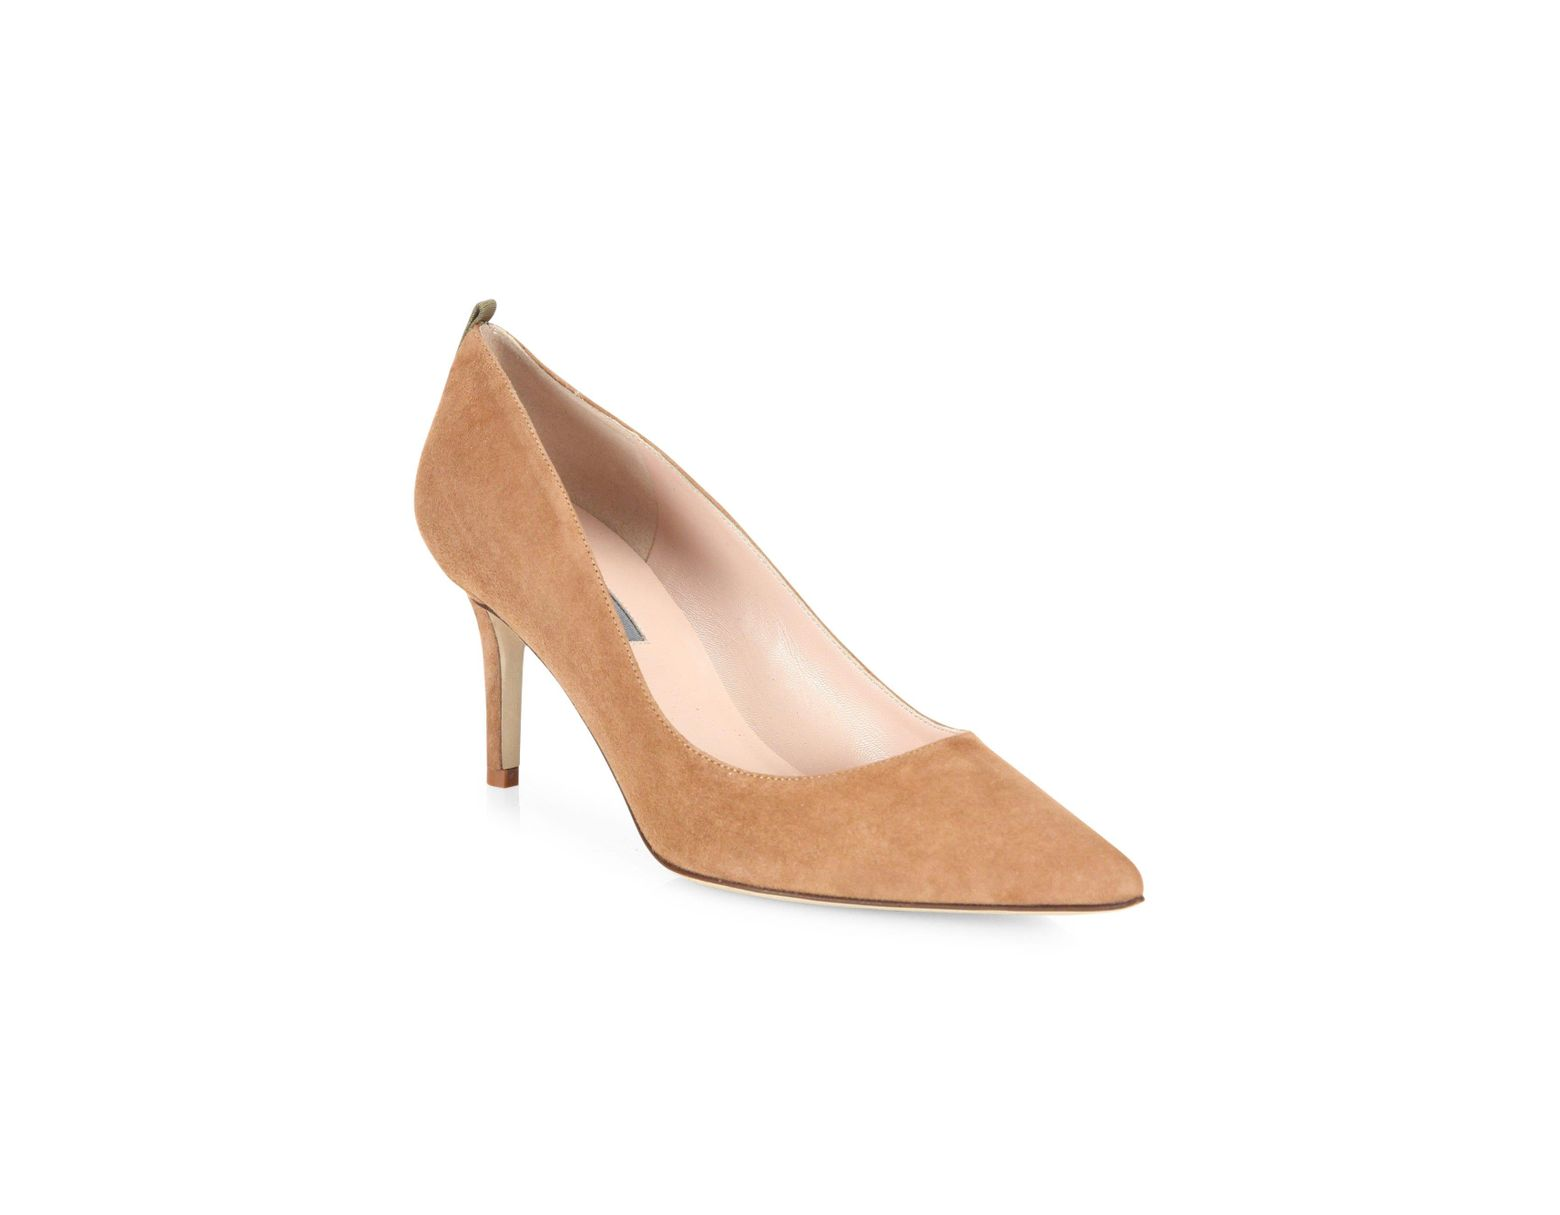 33fc719bf9 SJP by Sarah Jessica Parker Women's Fawn Point Toe Suede Pumps - Tan - Lyst